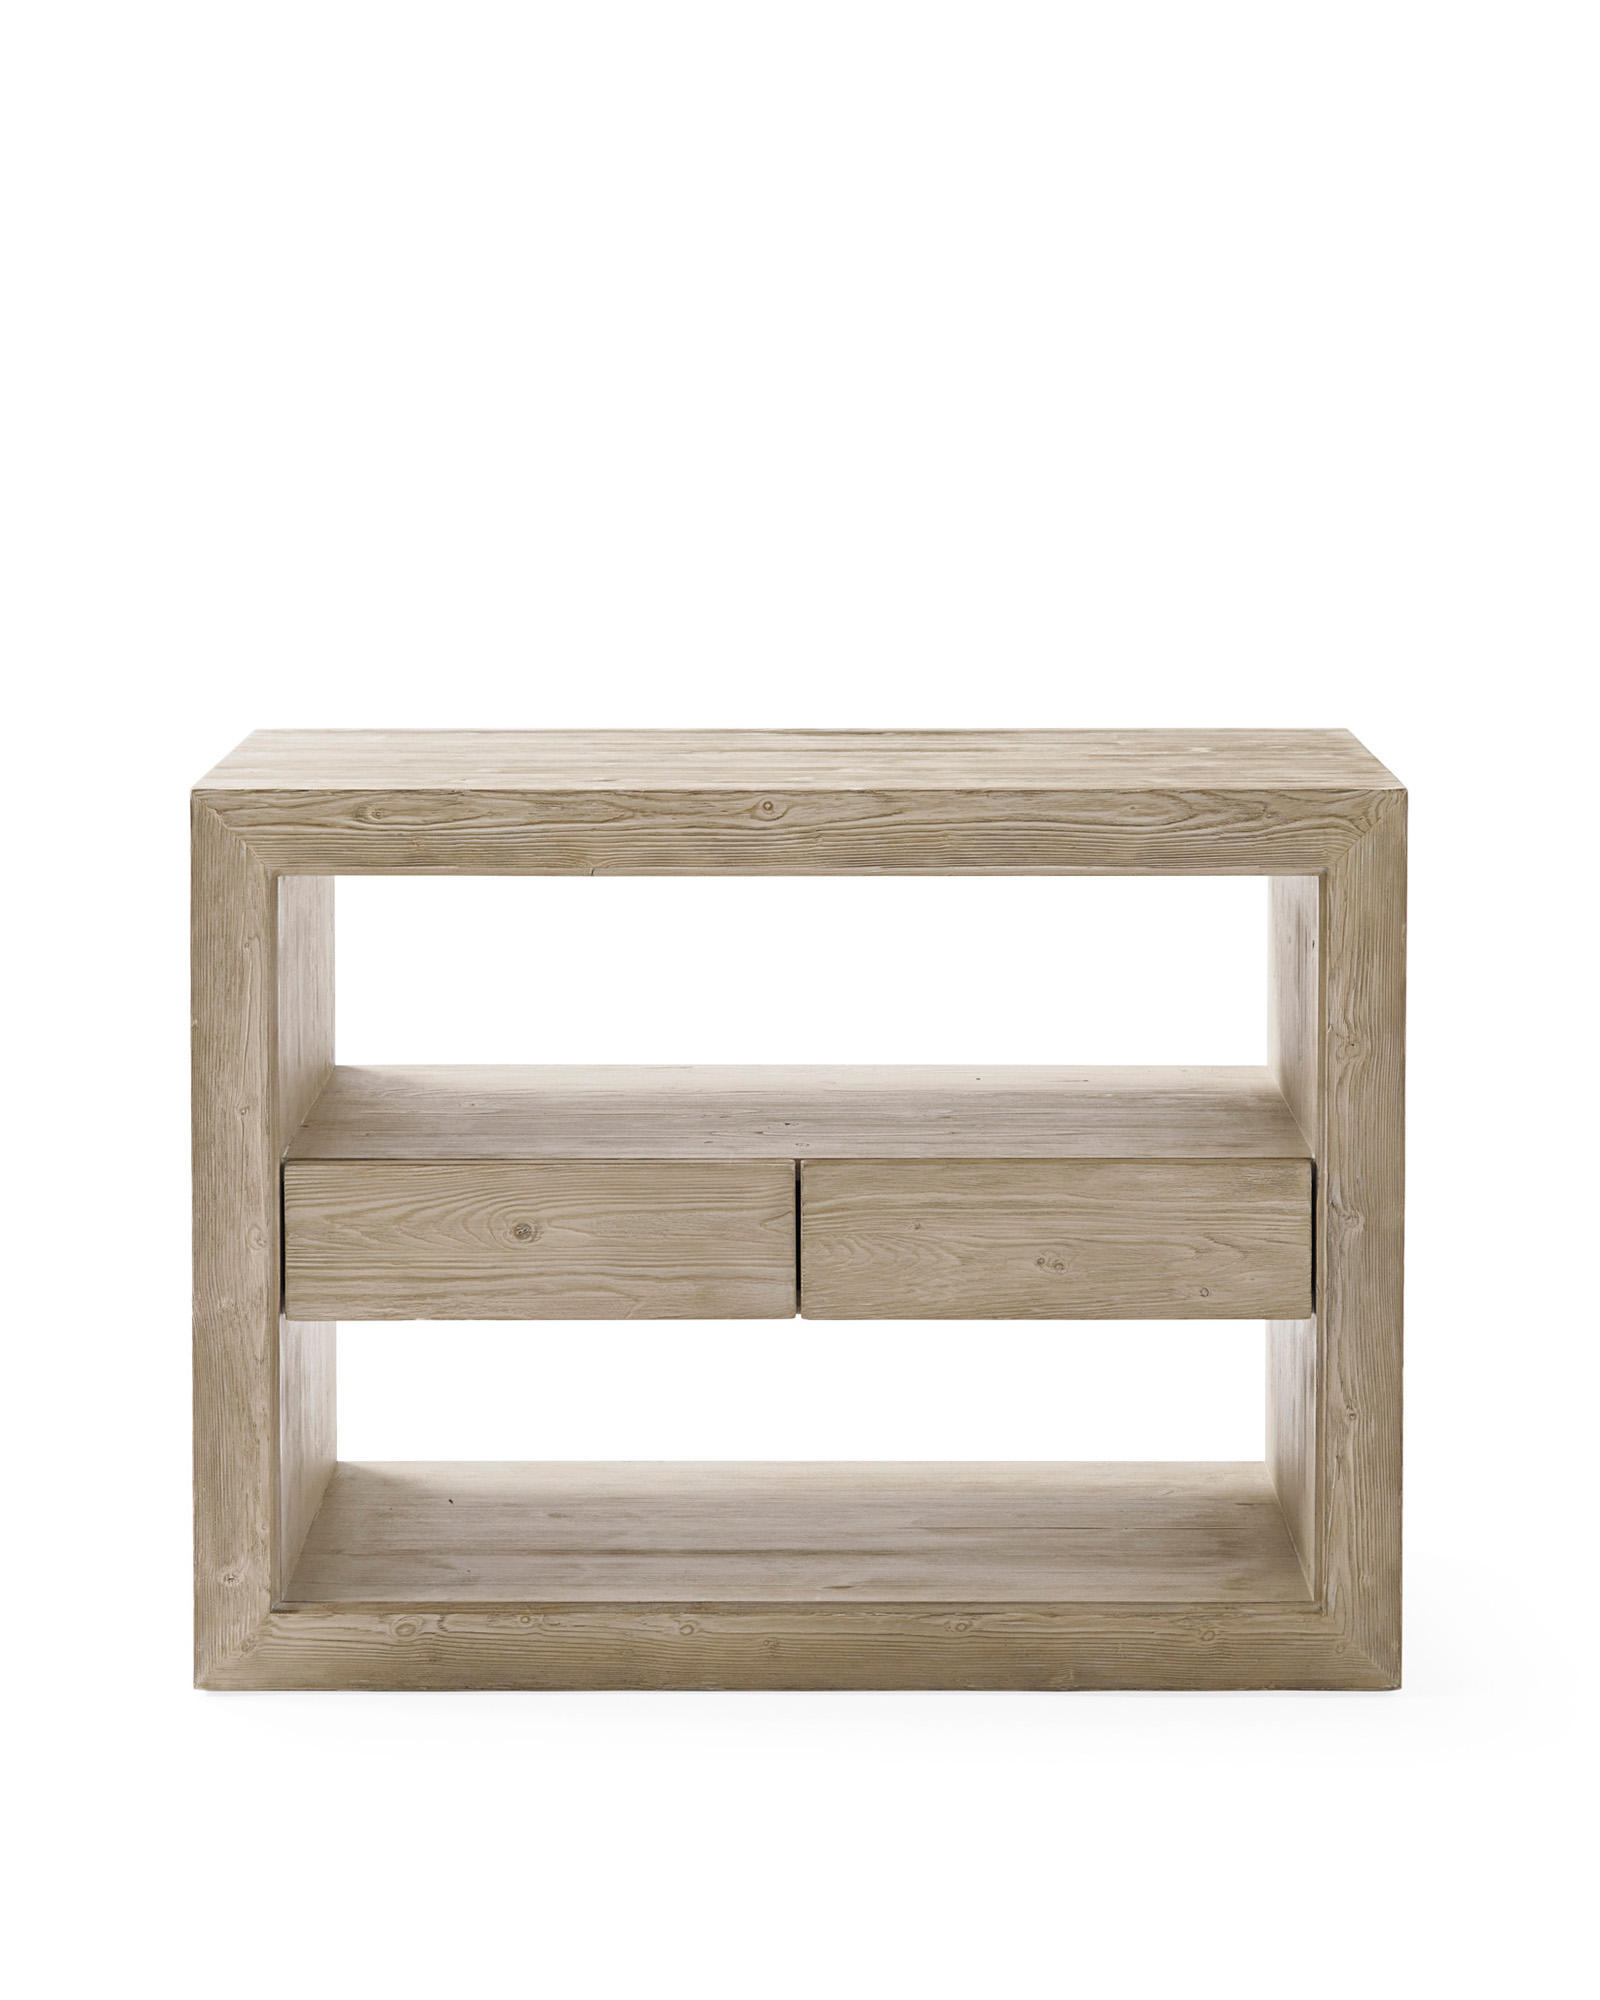 Atelier Wide Side Table, Sunbleached Pine